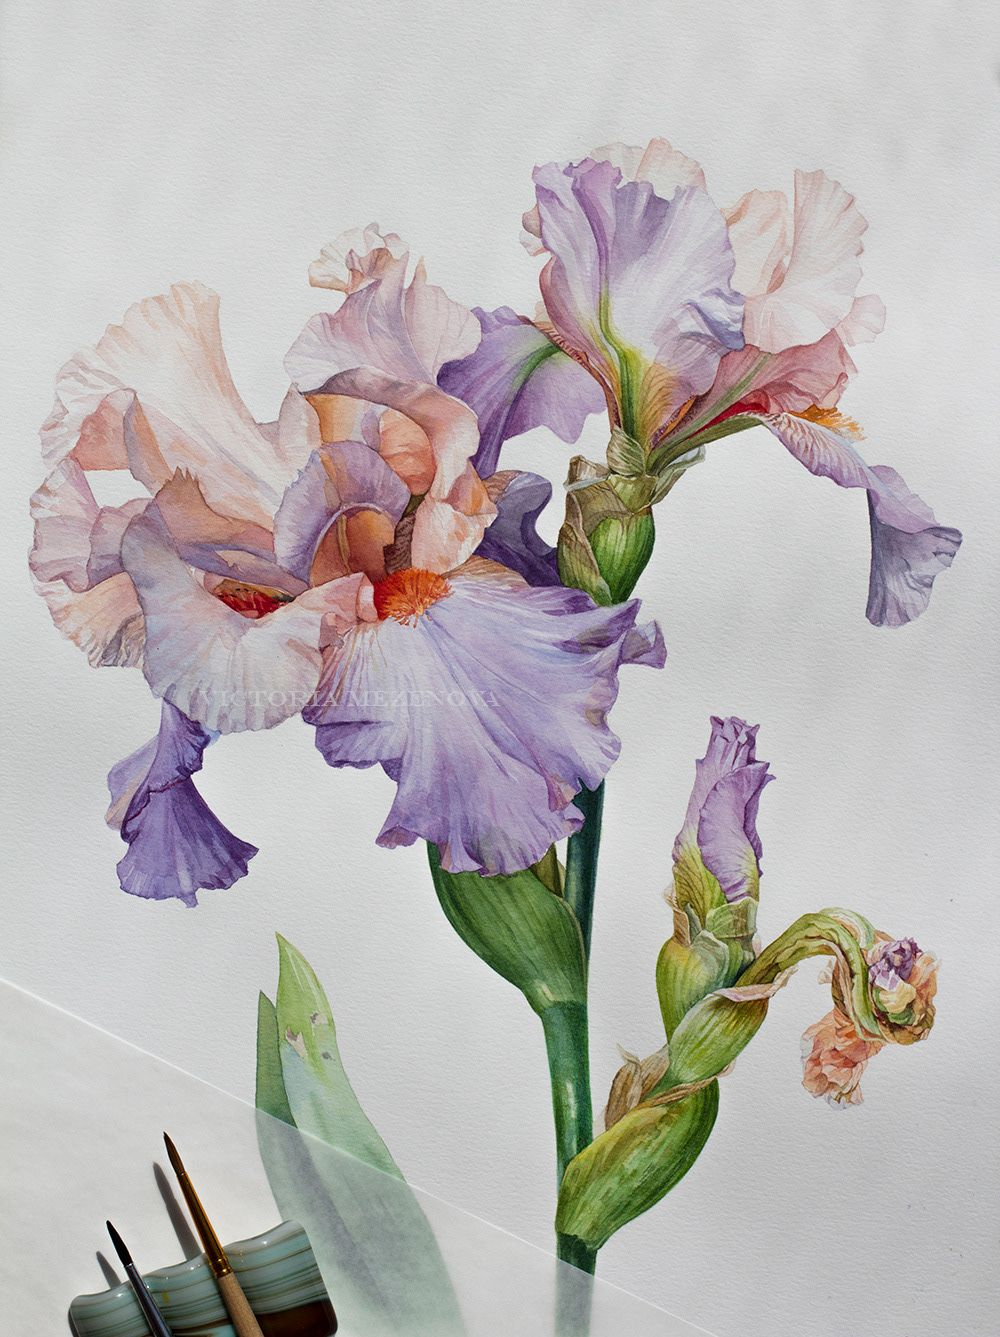 Iris Watercolor Illustration By Victoria Mezenova